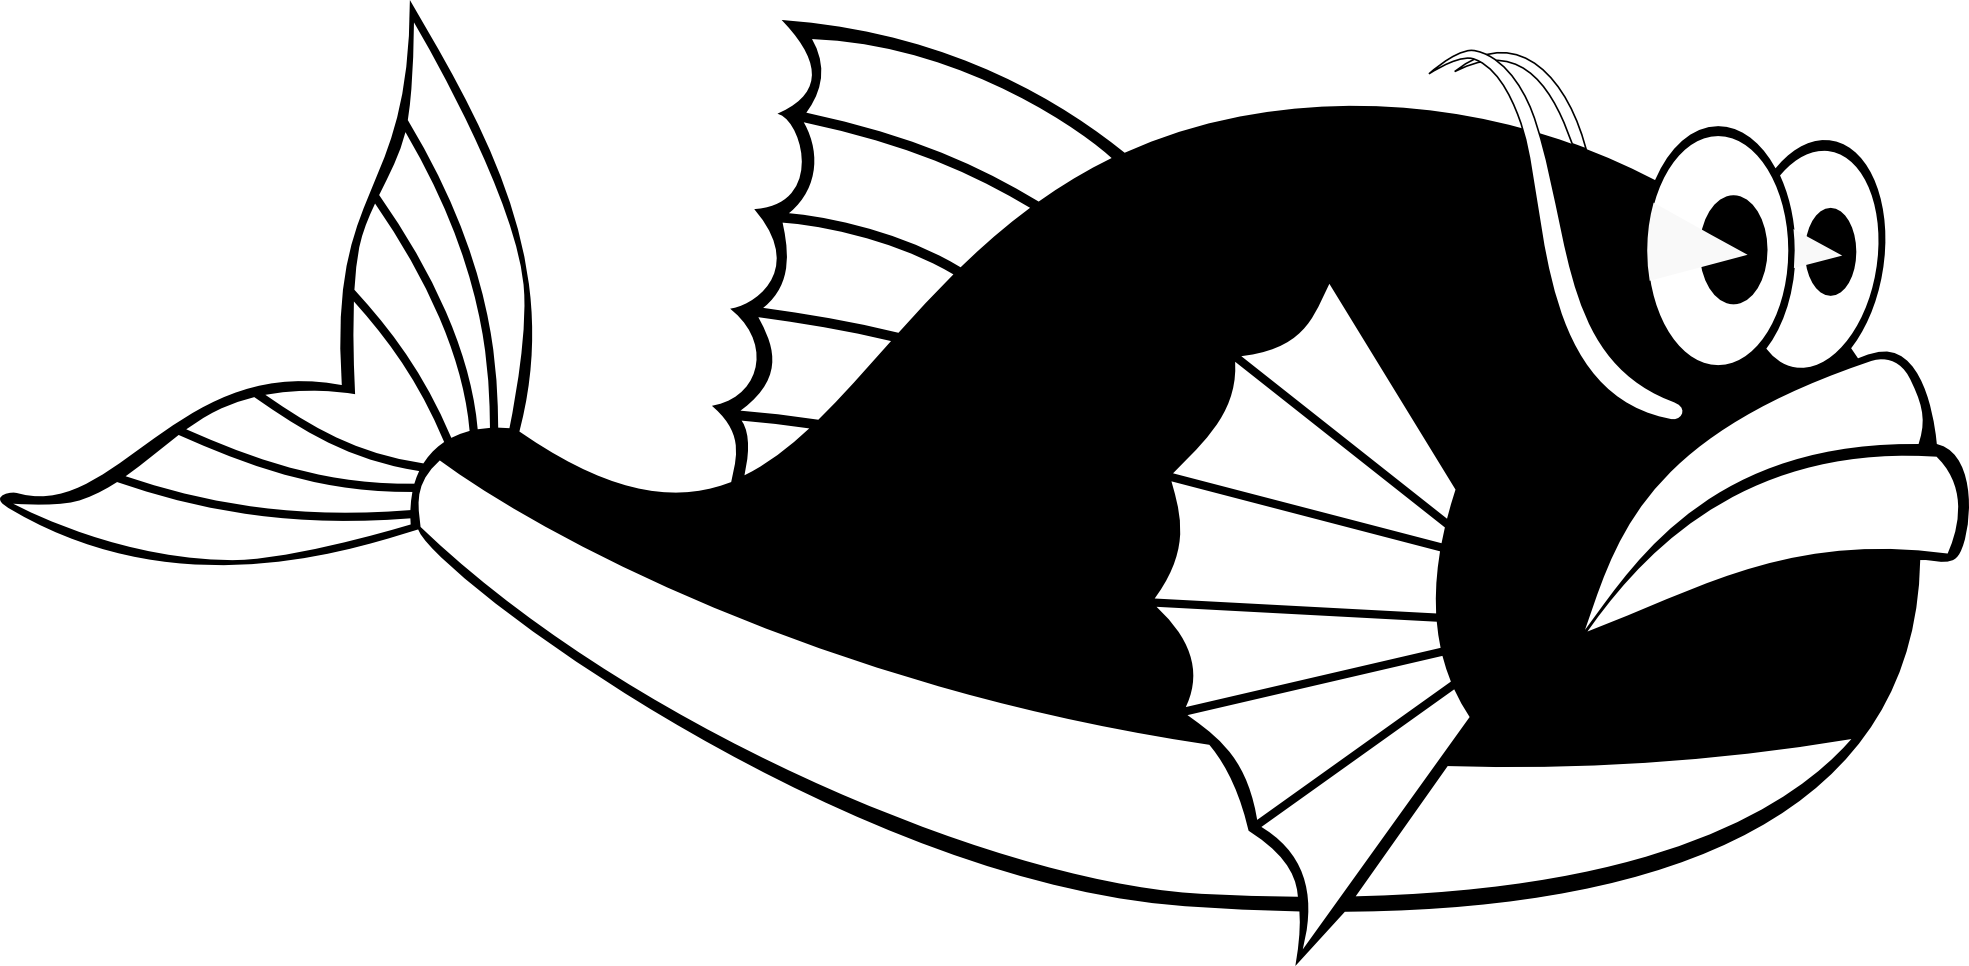 Whale Black And White Whale Silhouette Clipart Gclipart